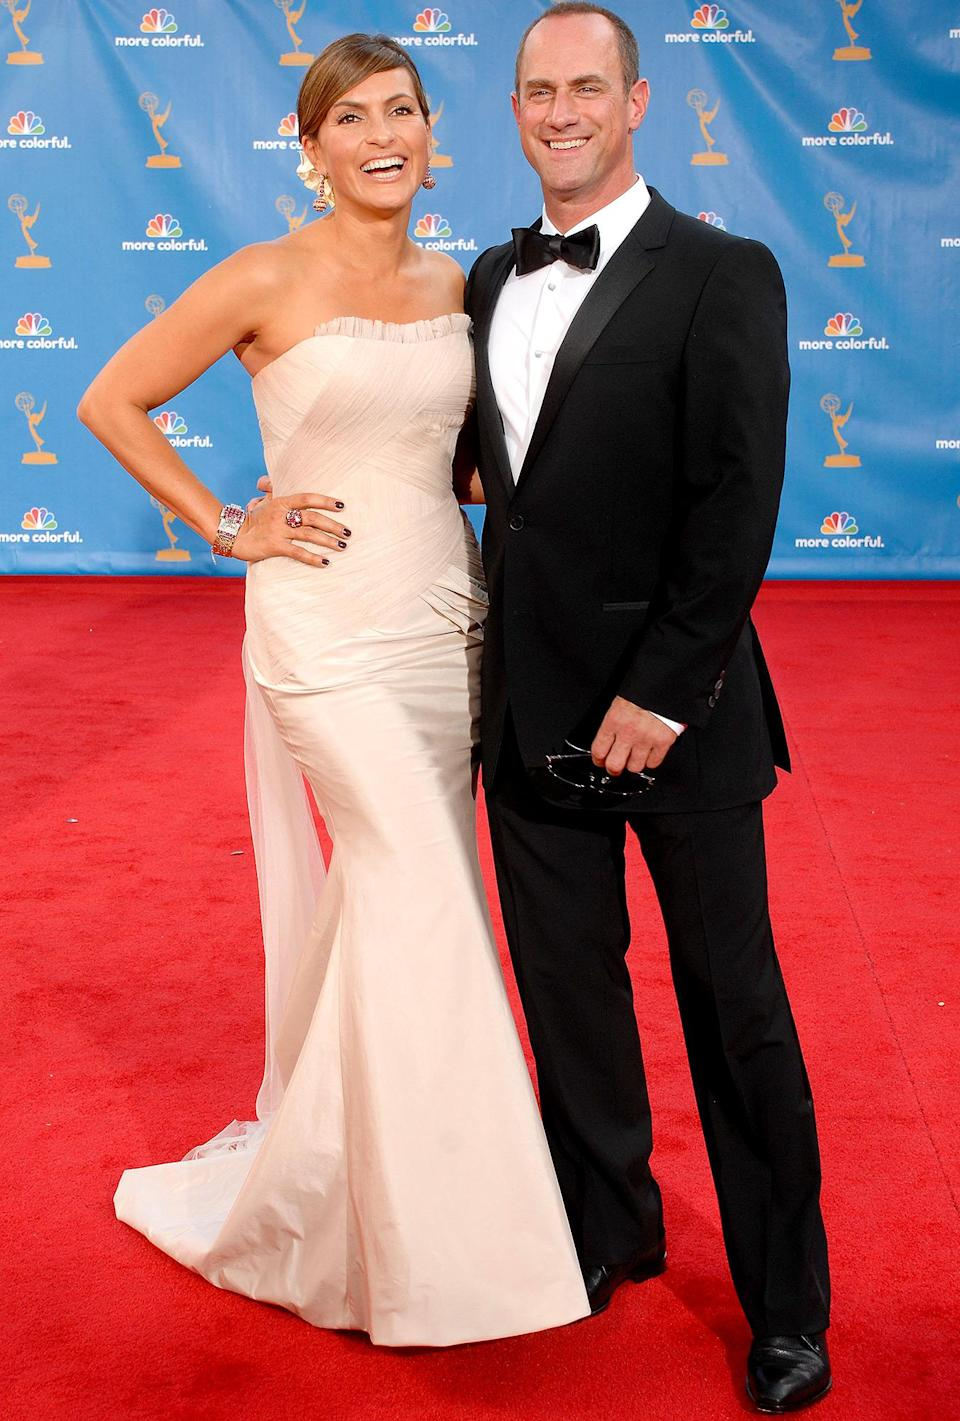 <p>Benson and Stabler reunited on the red carpet! Just kidding, it's Mariska Hargitay and Christopher Meloni.</p>